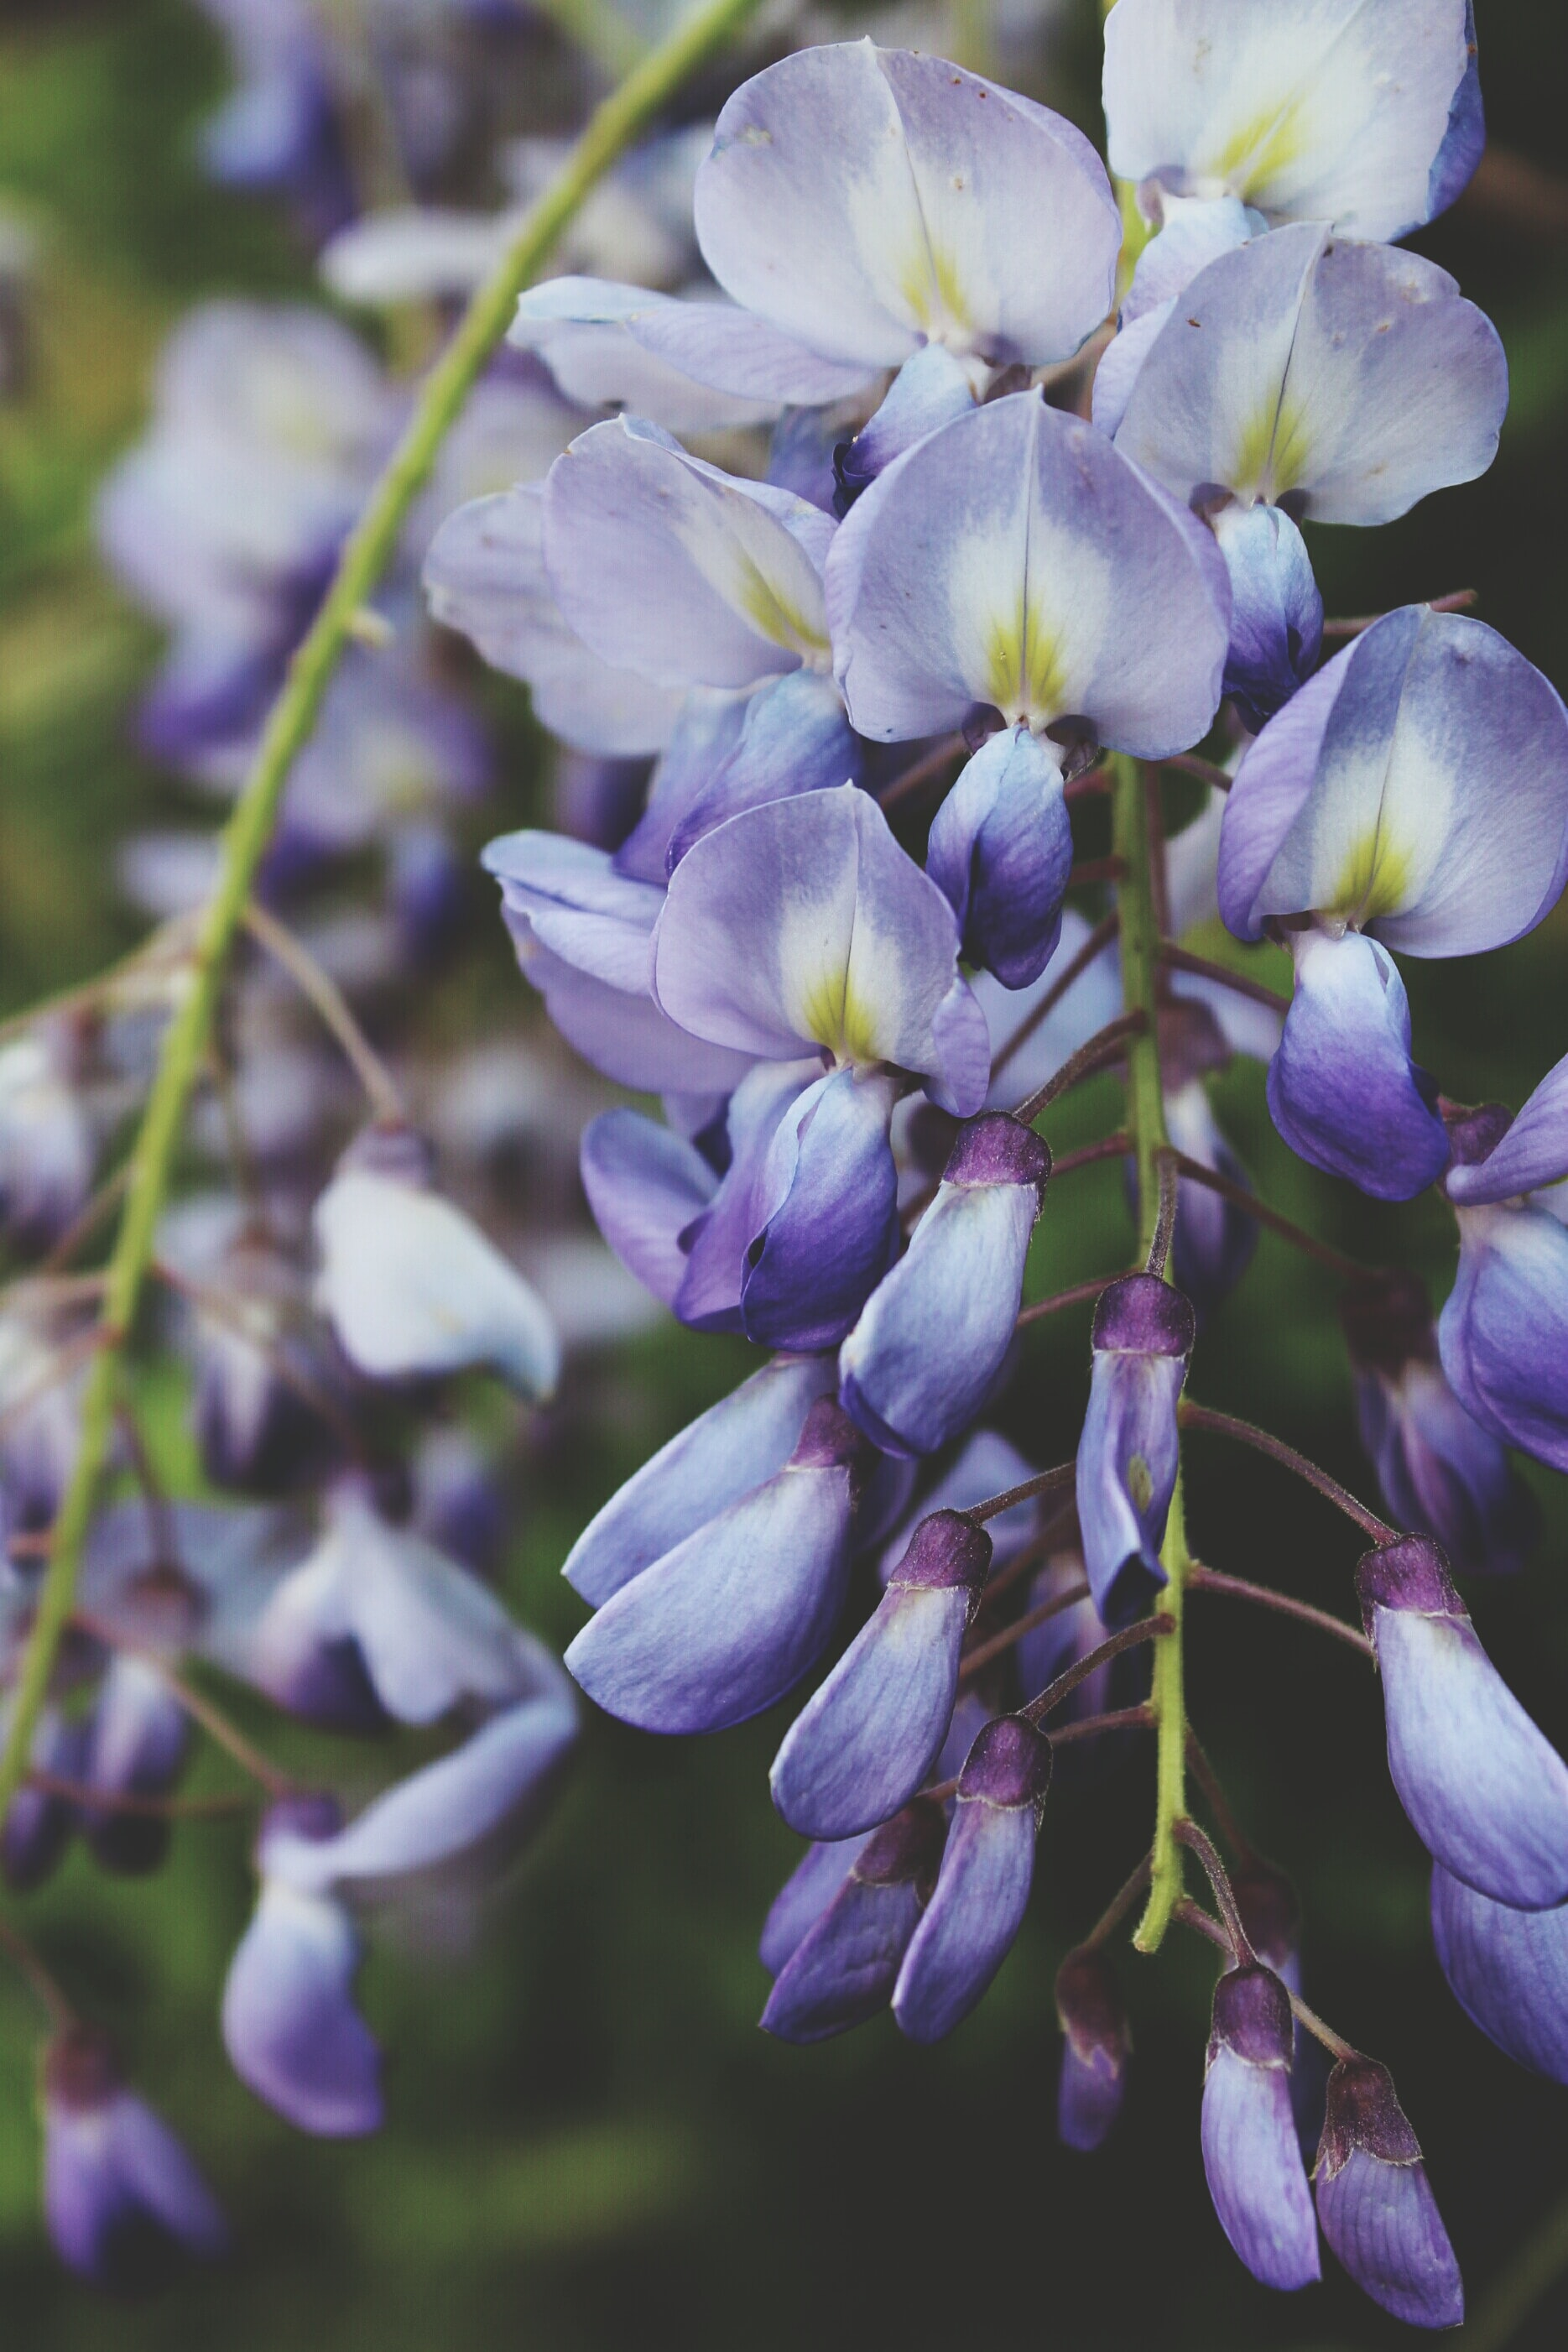 Purple petals on a Wisteria flower bloom in the wild